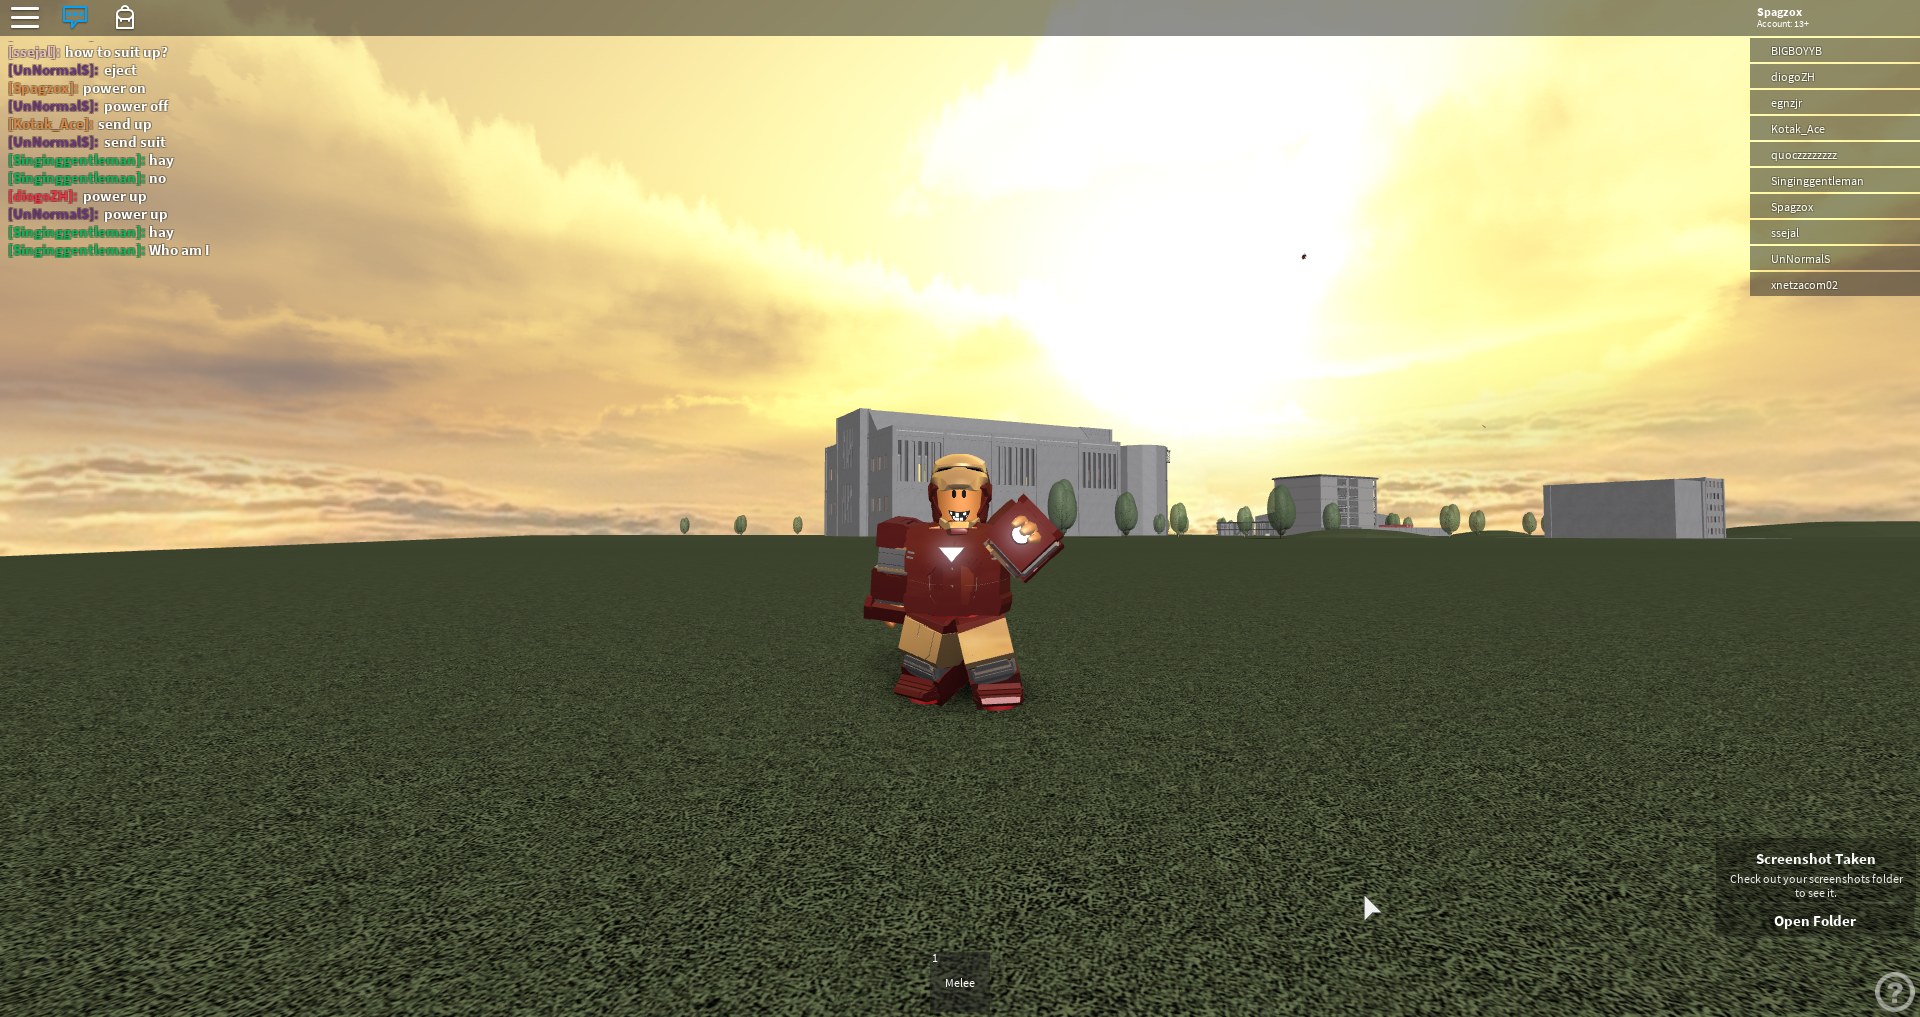 Iron Man Simulator - Spagz Blox